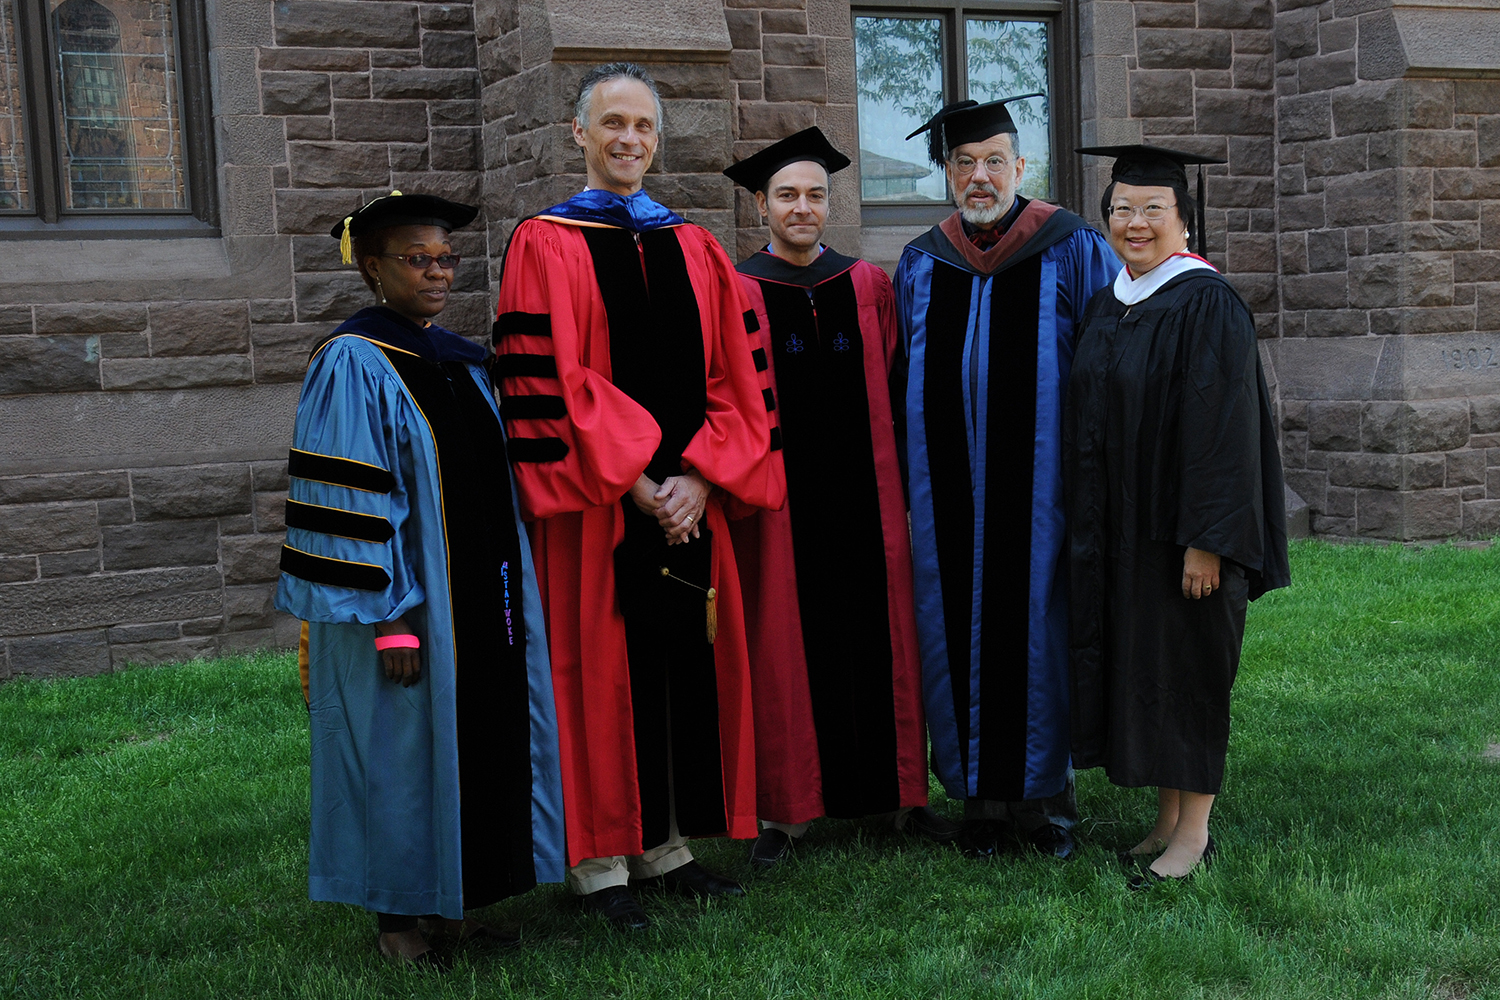 Wesleyan President Michael Roth (second of left) and Daphne Kwok '84, chair of the Wesleyan Alumni Association 9fifth from left) presented The Binswanger Prize for Excellence in Teaching to Gina Athena Ulysse (at left), Michael Calter and David Schorr. (Photo by John Van Vlack)